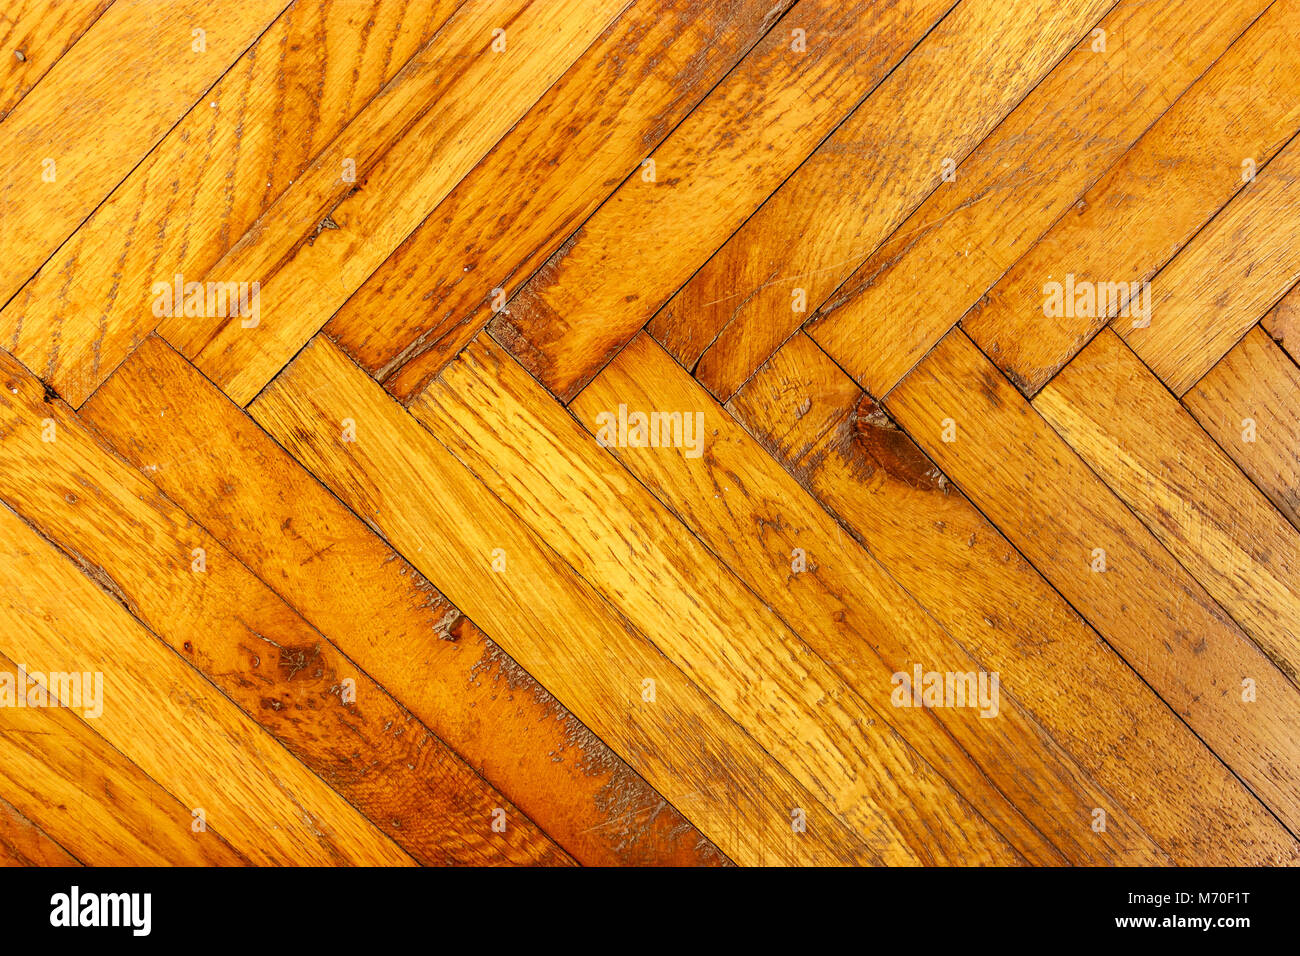 Old gold wooden background, horizontal orientation, close up - Stock Image